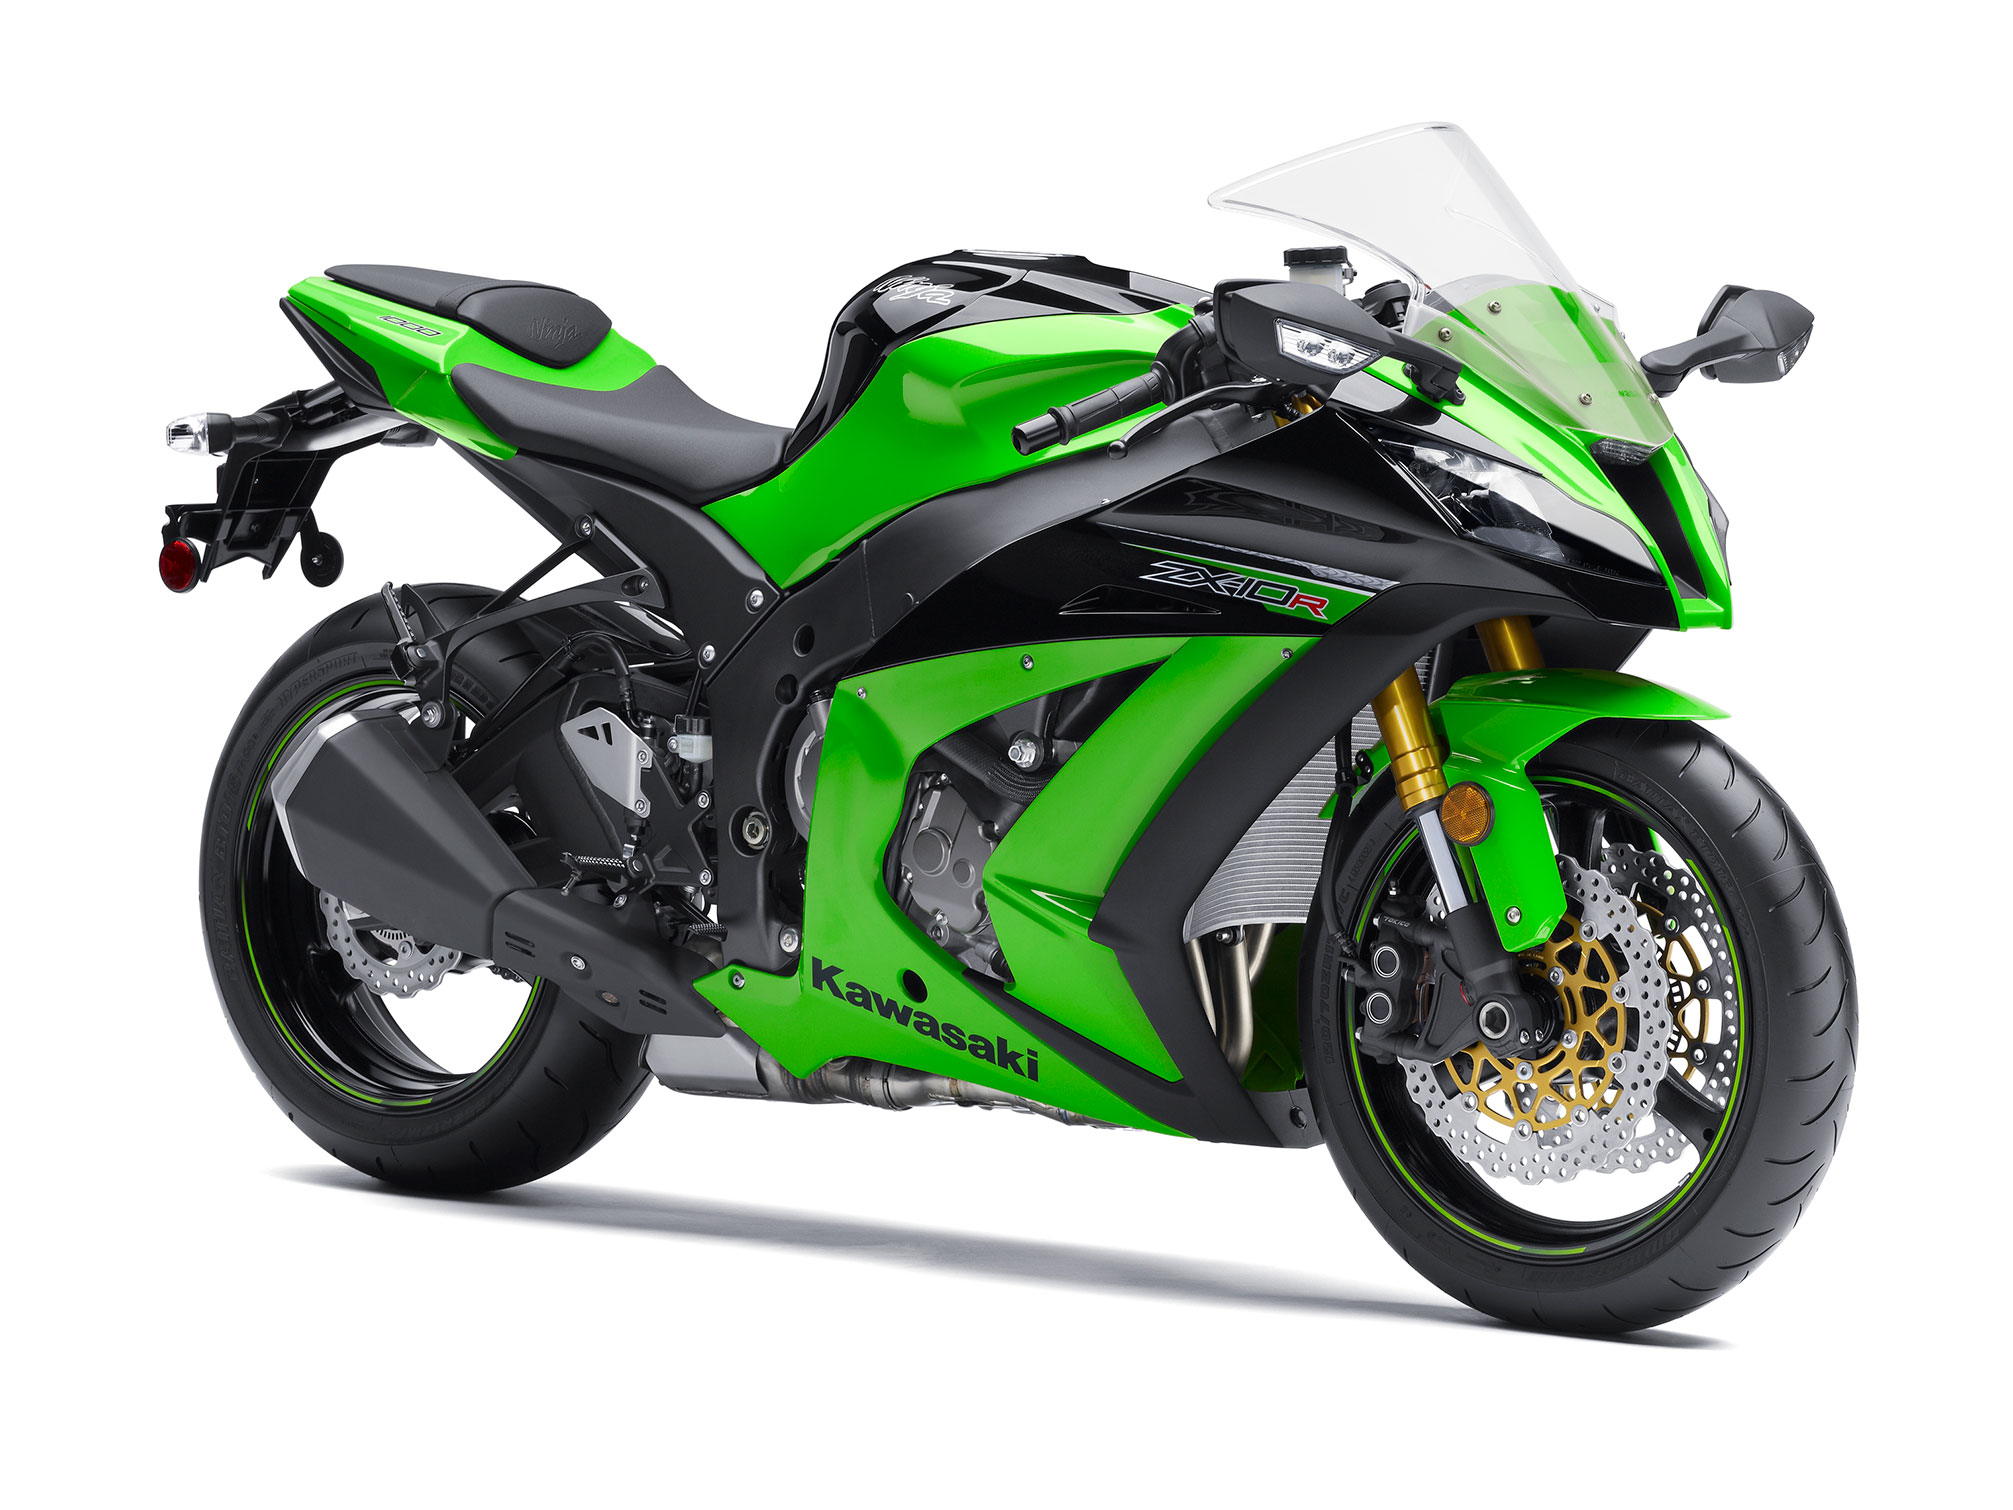 kawasaki ninja zx 10r specs 2012 2013 autoevolution. Black Bedroom Furniture Sets. Home Design Ideas